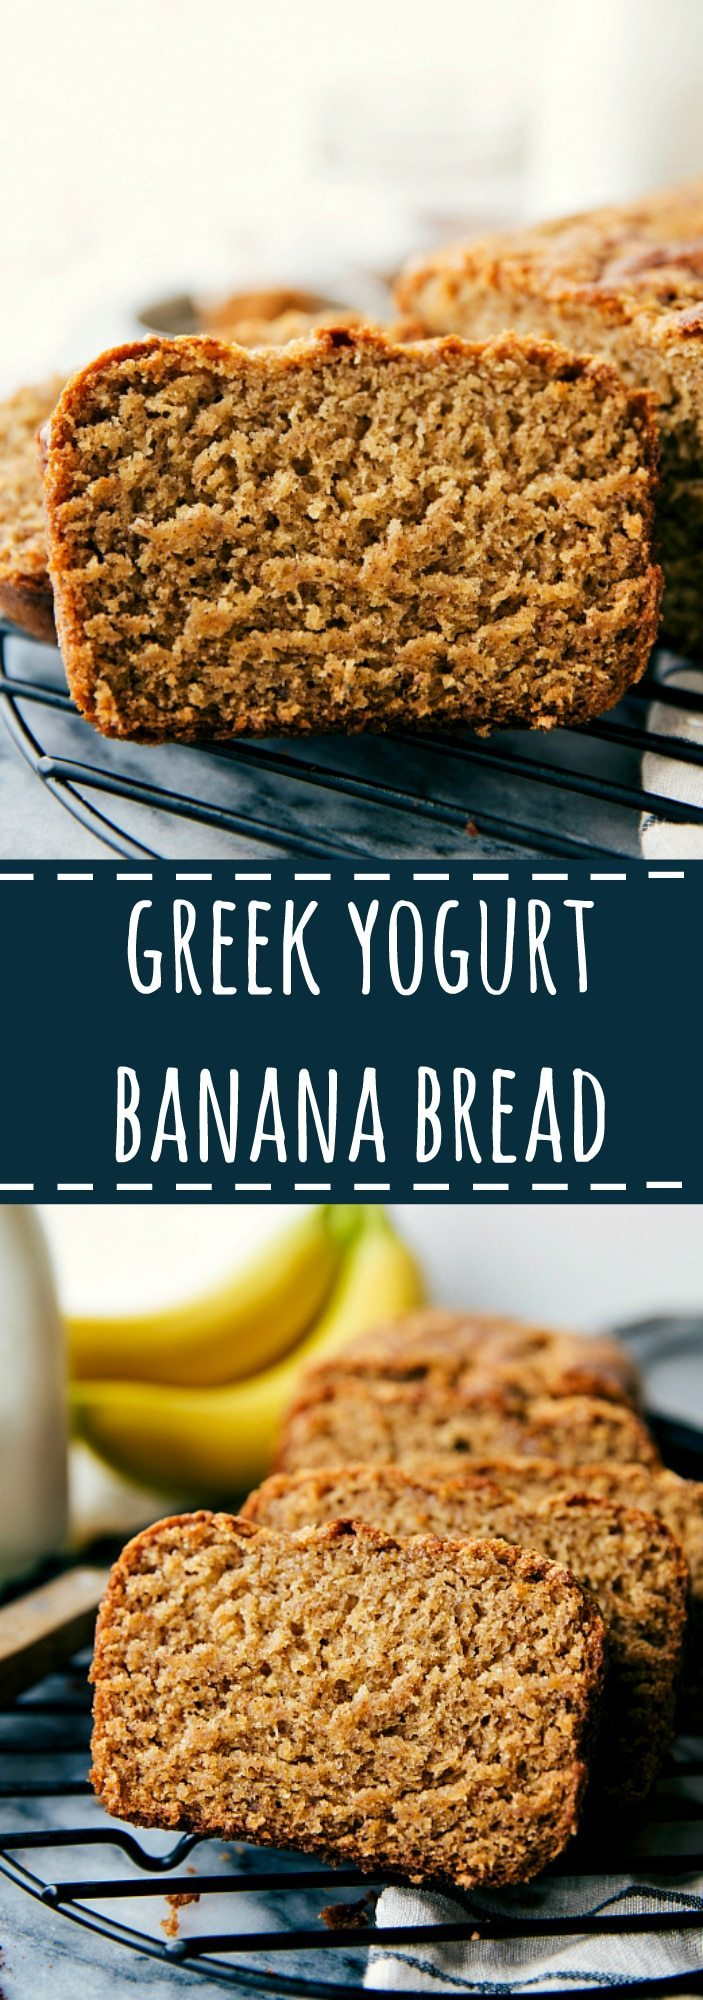 Delicious healthier Greek Yogurt banana bread